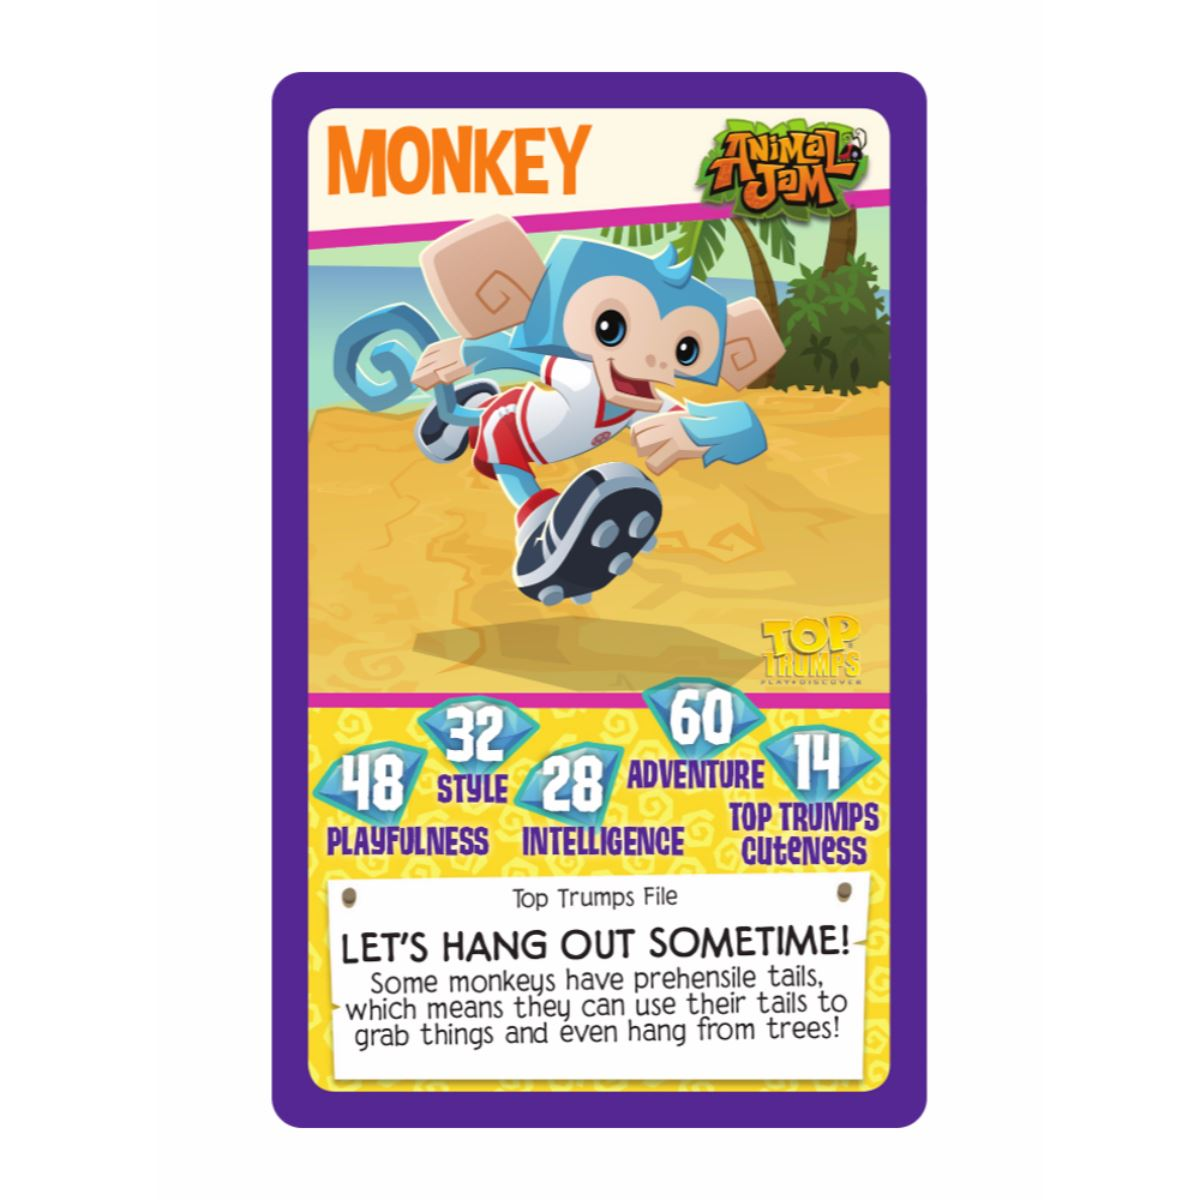 Monopoly instant win codes for animal jam